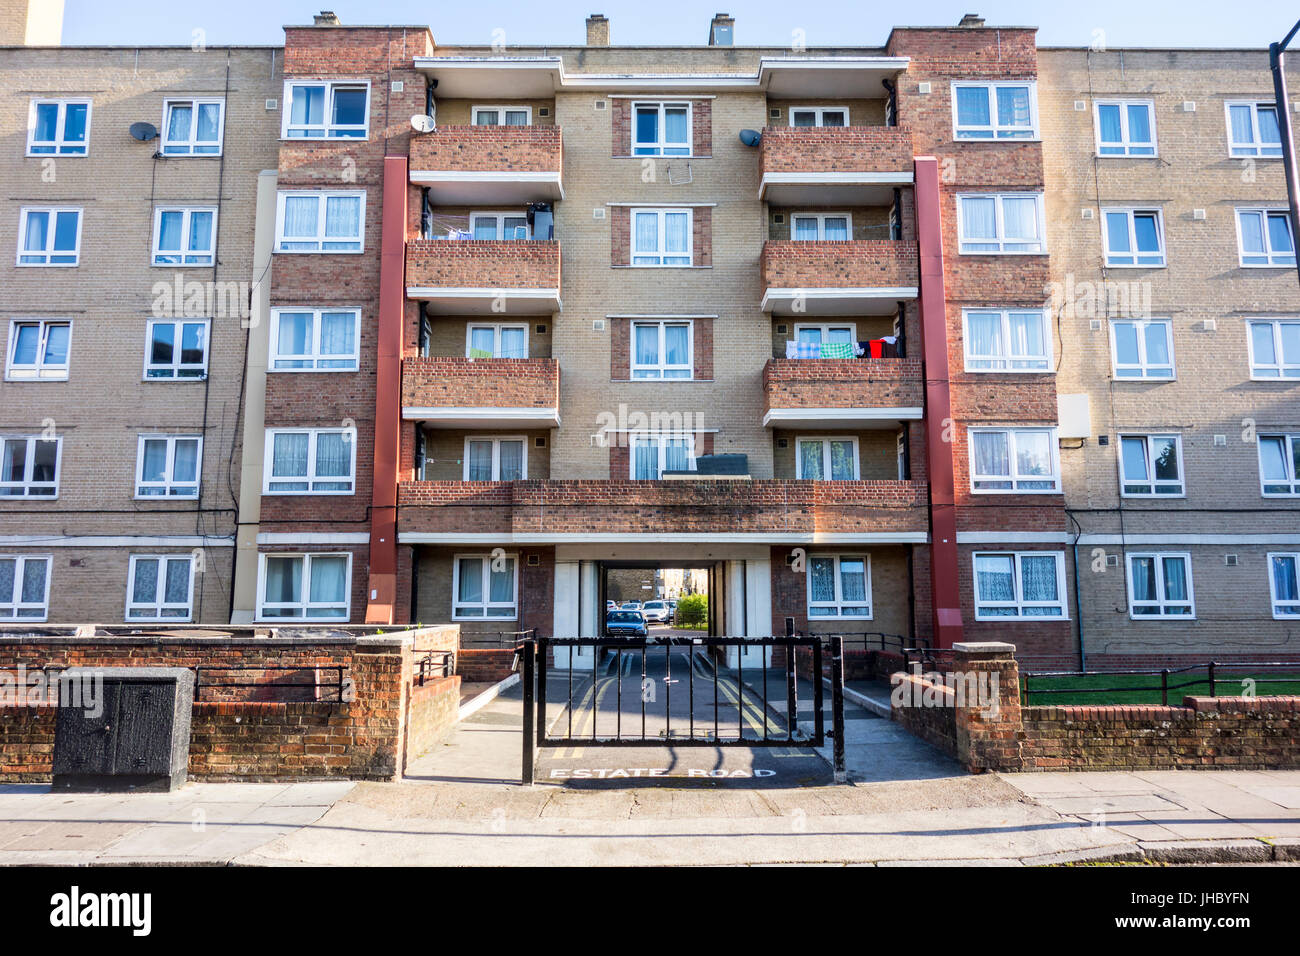 Collingwood House, Darling Row, Bethnal Green, Tower Hamlets, East London, UK Stock Photo